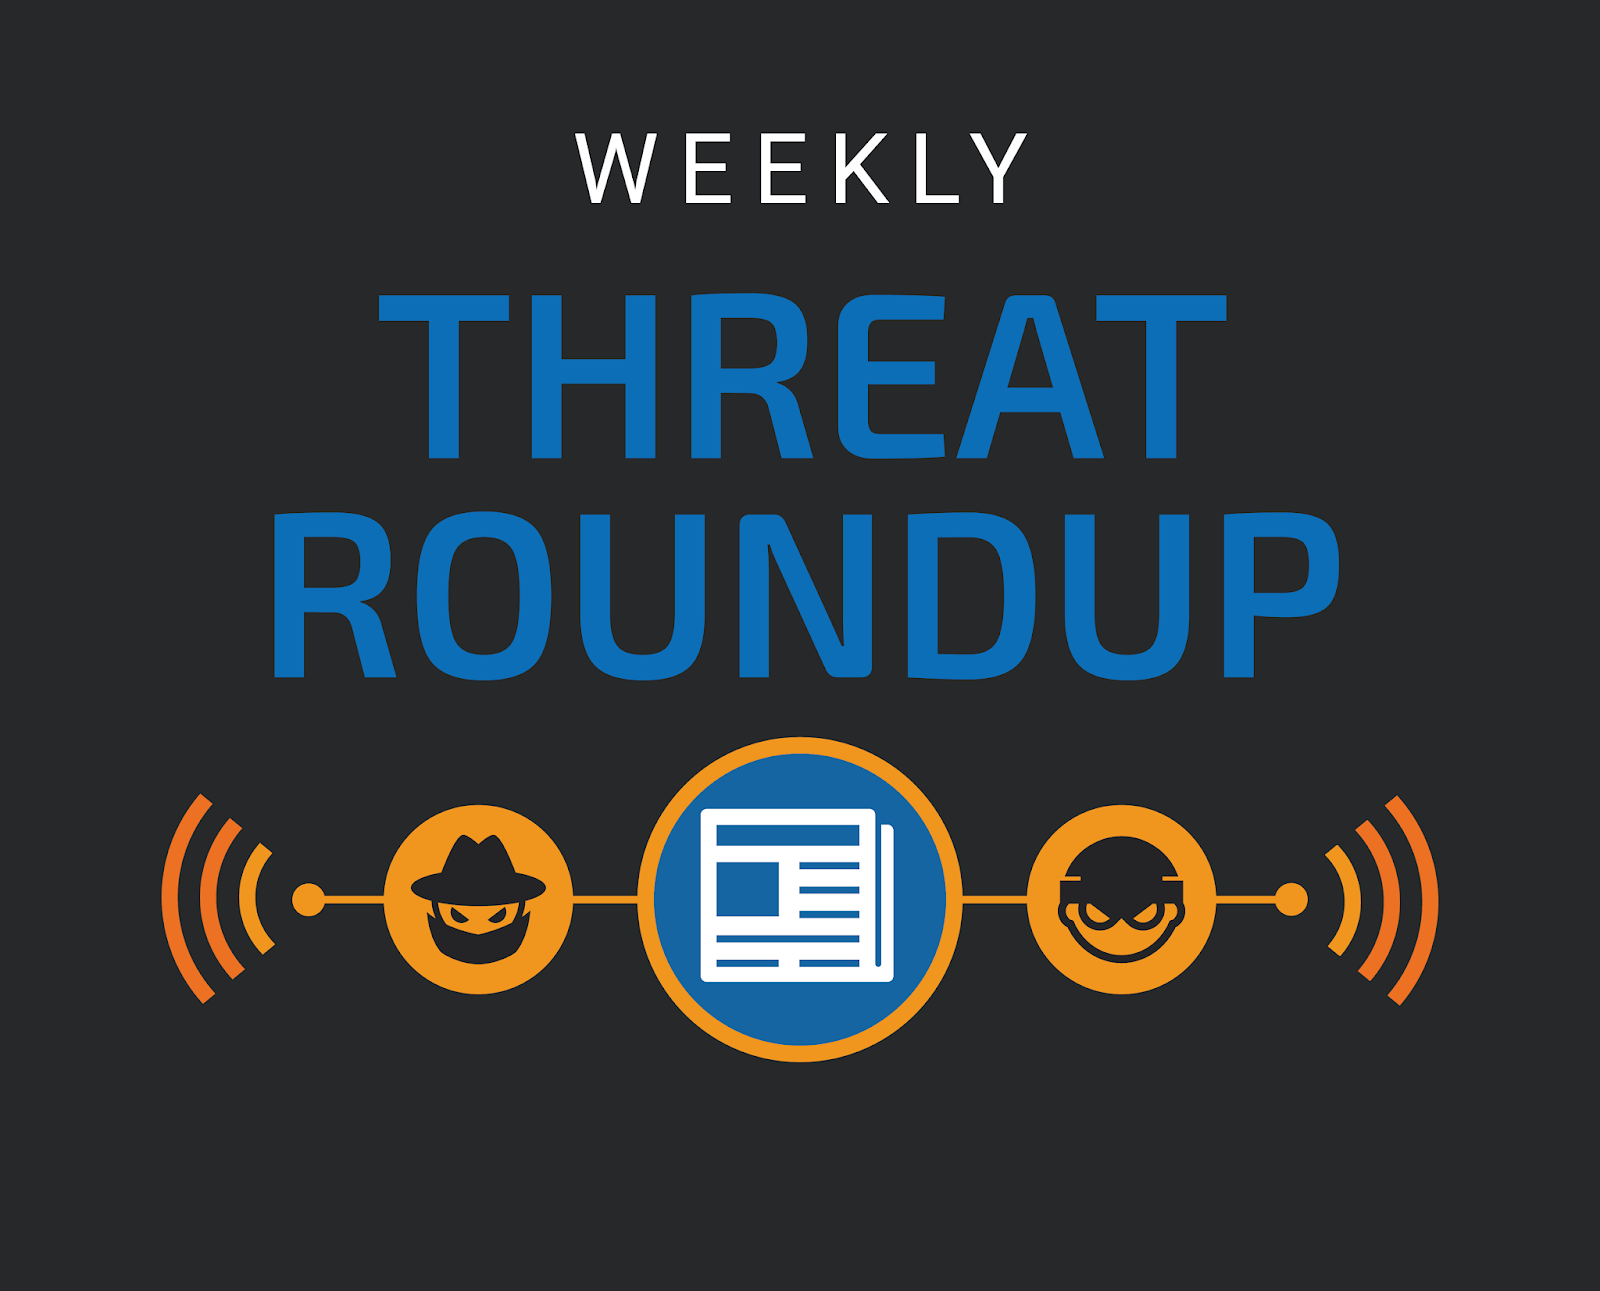 f9e60ceab Today, as we do every week, Talos is giving you a glimpse into the most  prevalent threats we've observed this week — covering the dates between  Oct. 5 and ...